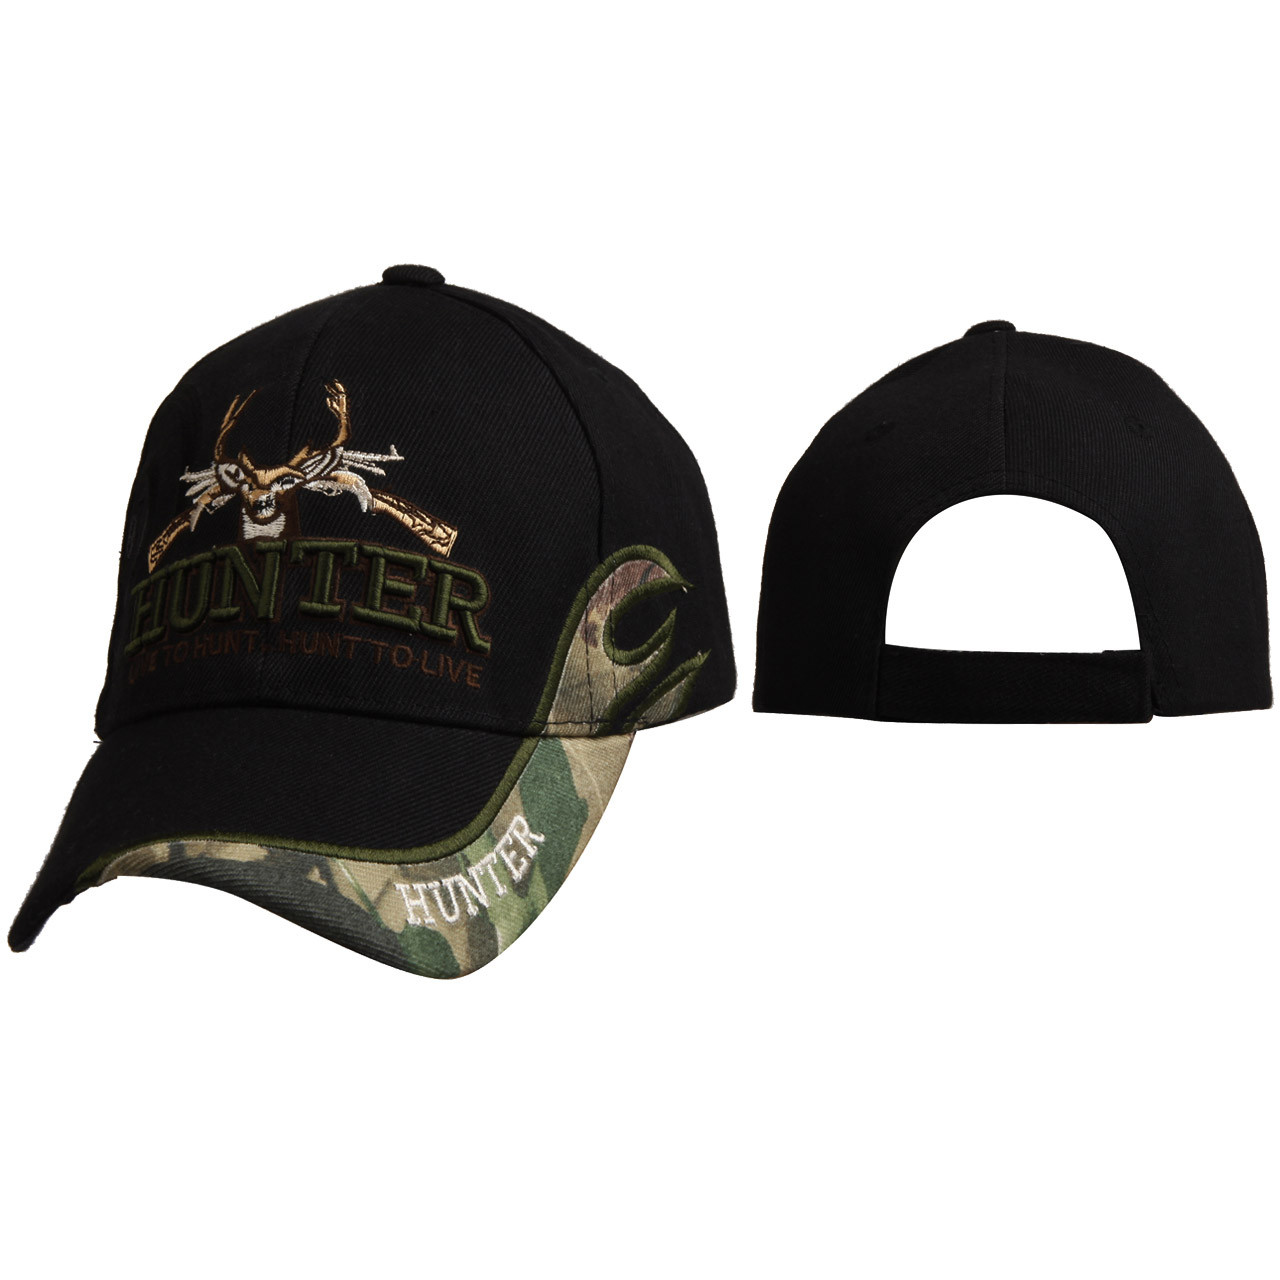 "Wholesale Hunting Cap C6013 ""HUNTER Live to Hunt. Hunt to Live"""